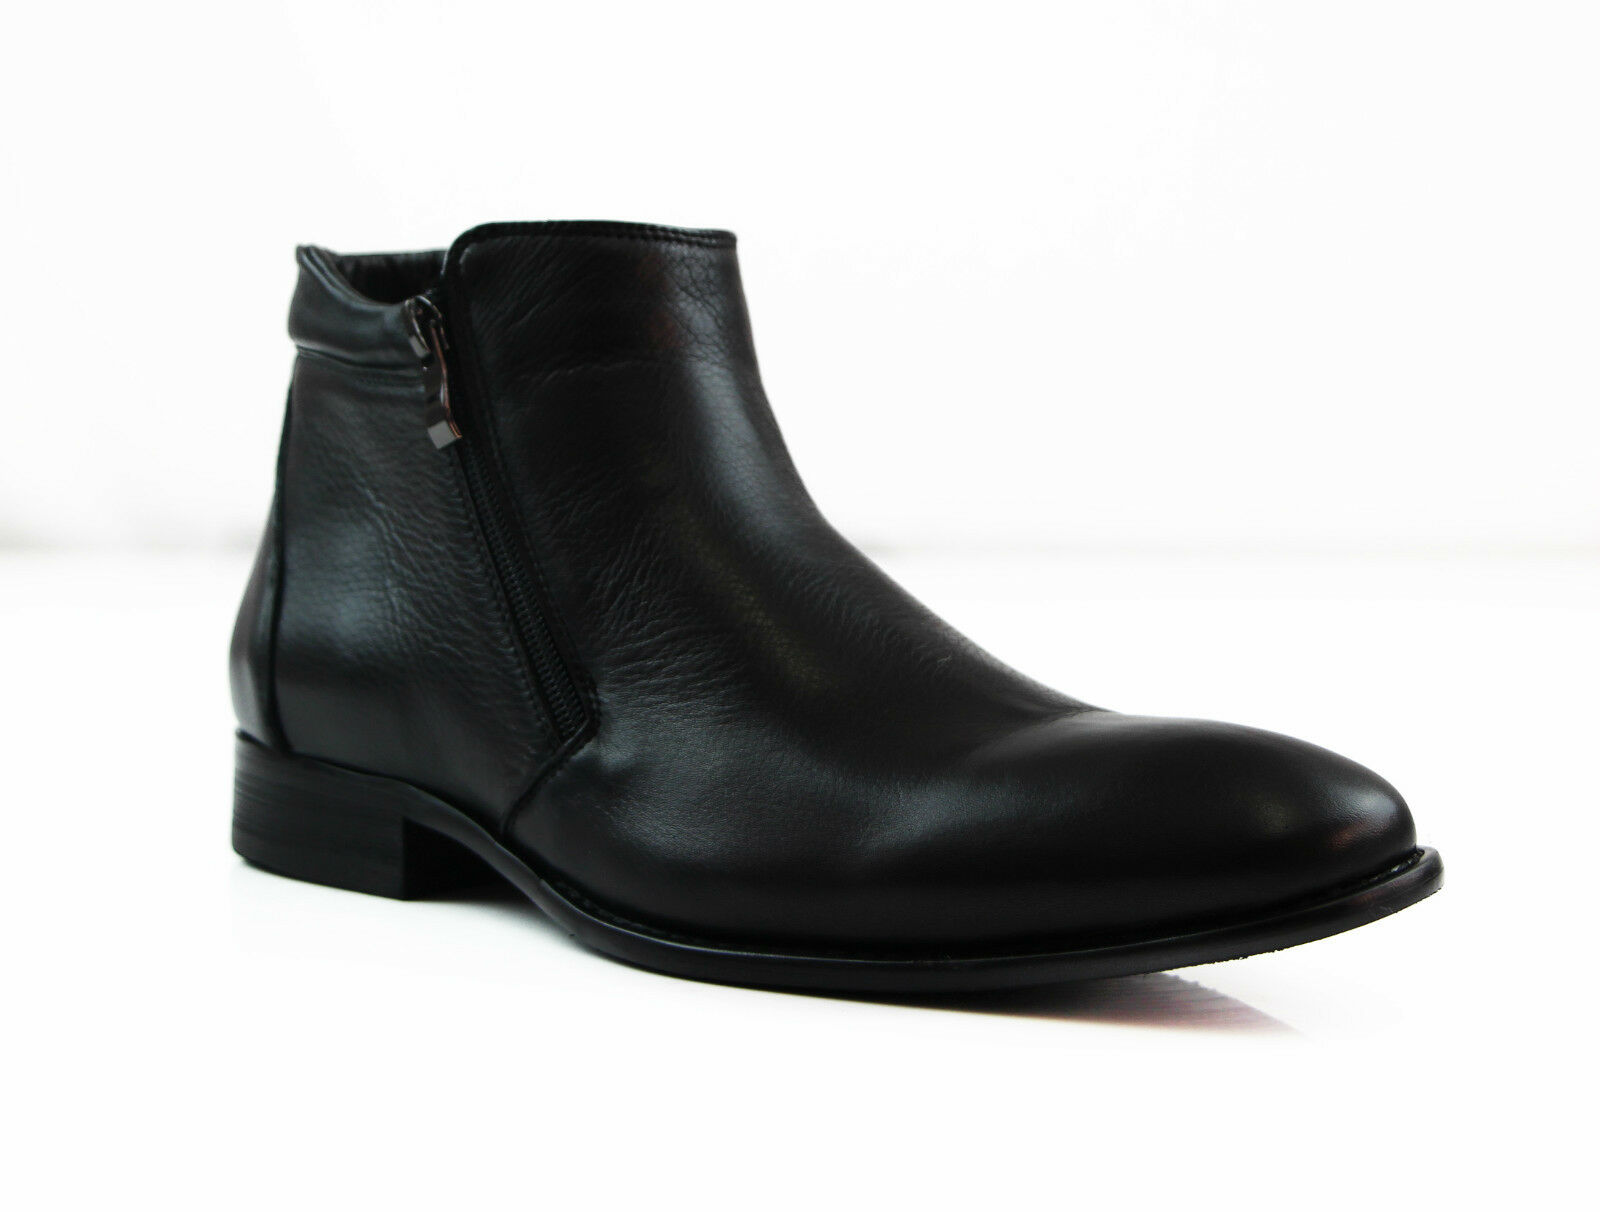 MENS BLACK ZASEL FORMAL CASUAL CASUAL LEATHER WITH ZIP DRESS CASUAL CASUAL MEN'S WEDDING BOOTS 5c4cdc